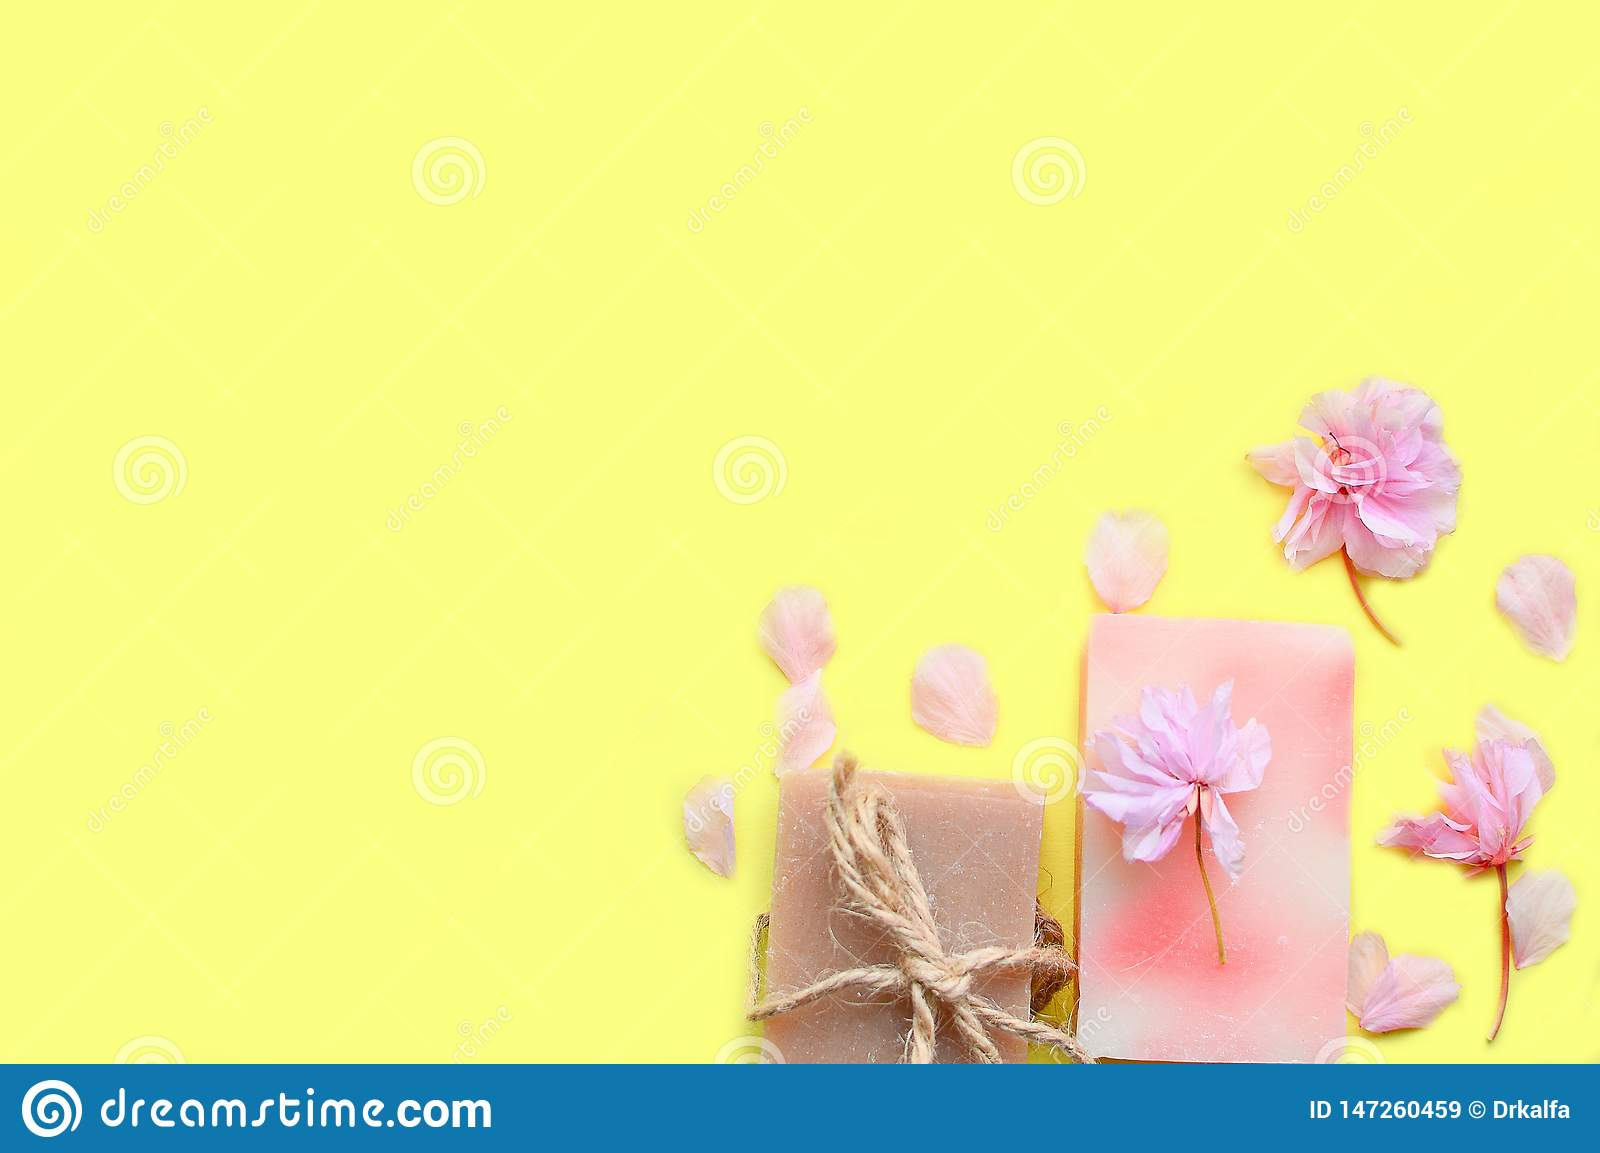 Handmade soap on a yellow background, flower petals.Space for a text